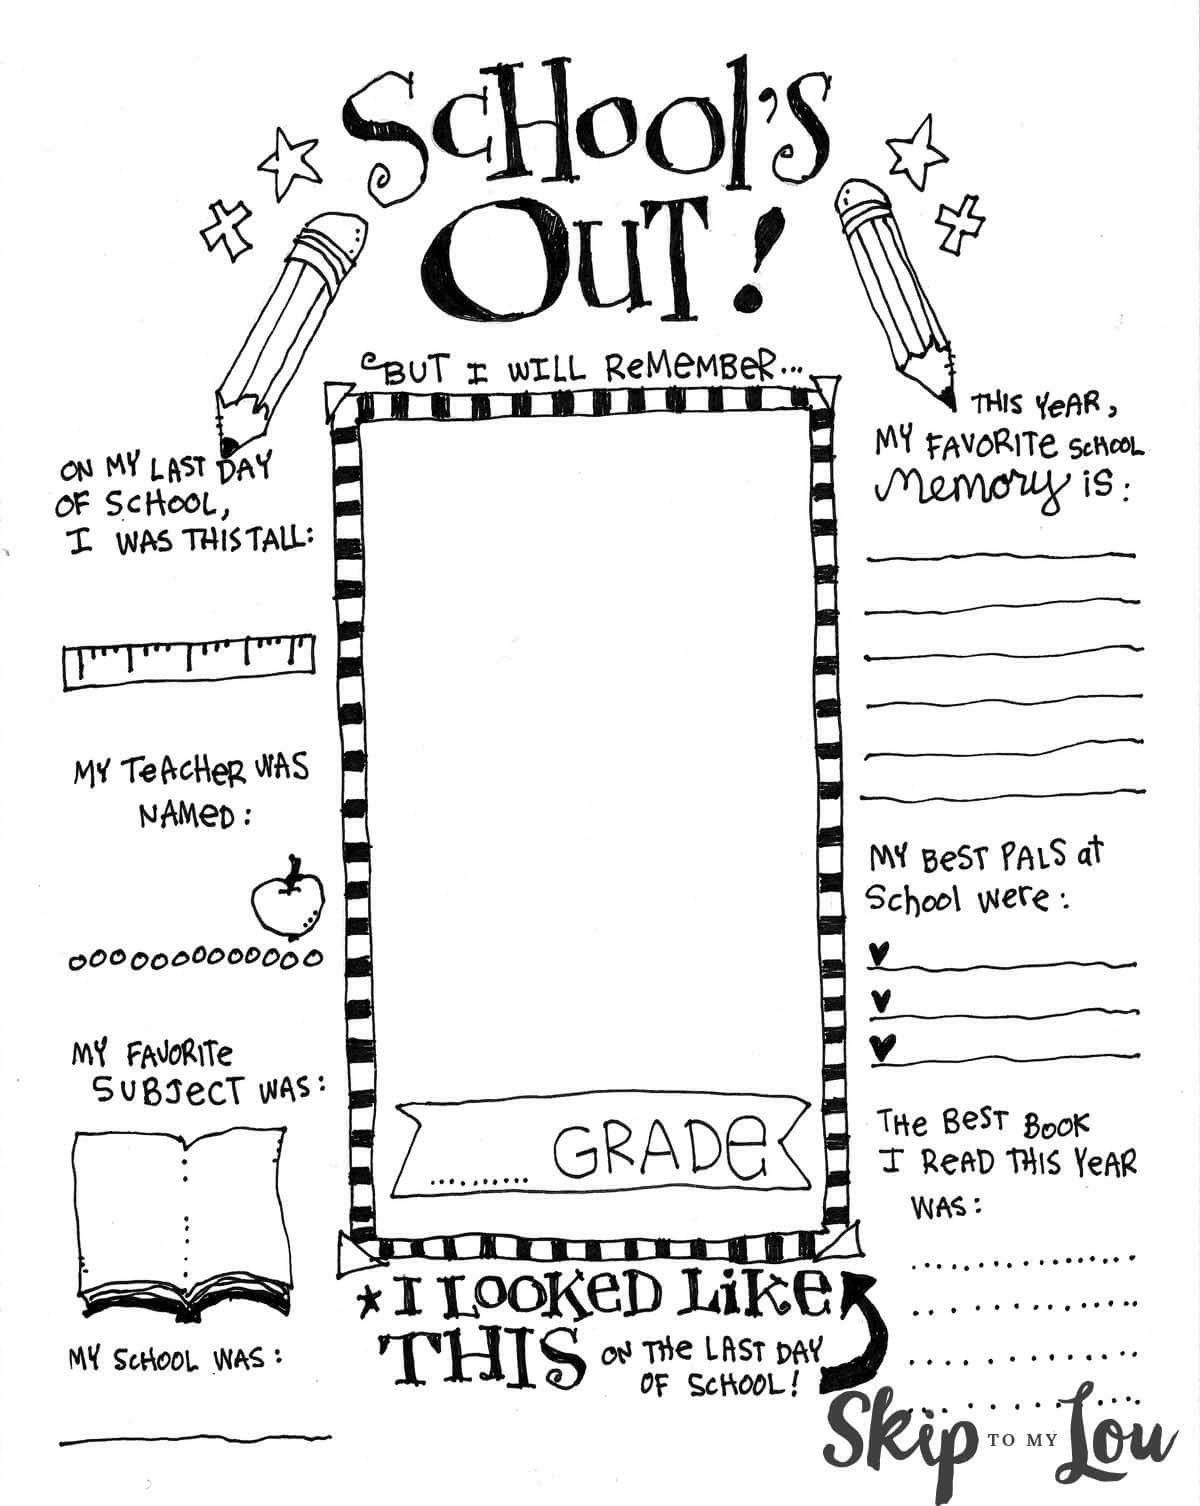 Pin By Sweet Serendipity On I M One Smart Cookie School Coloring Pages School Memories School Worksheets